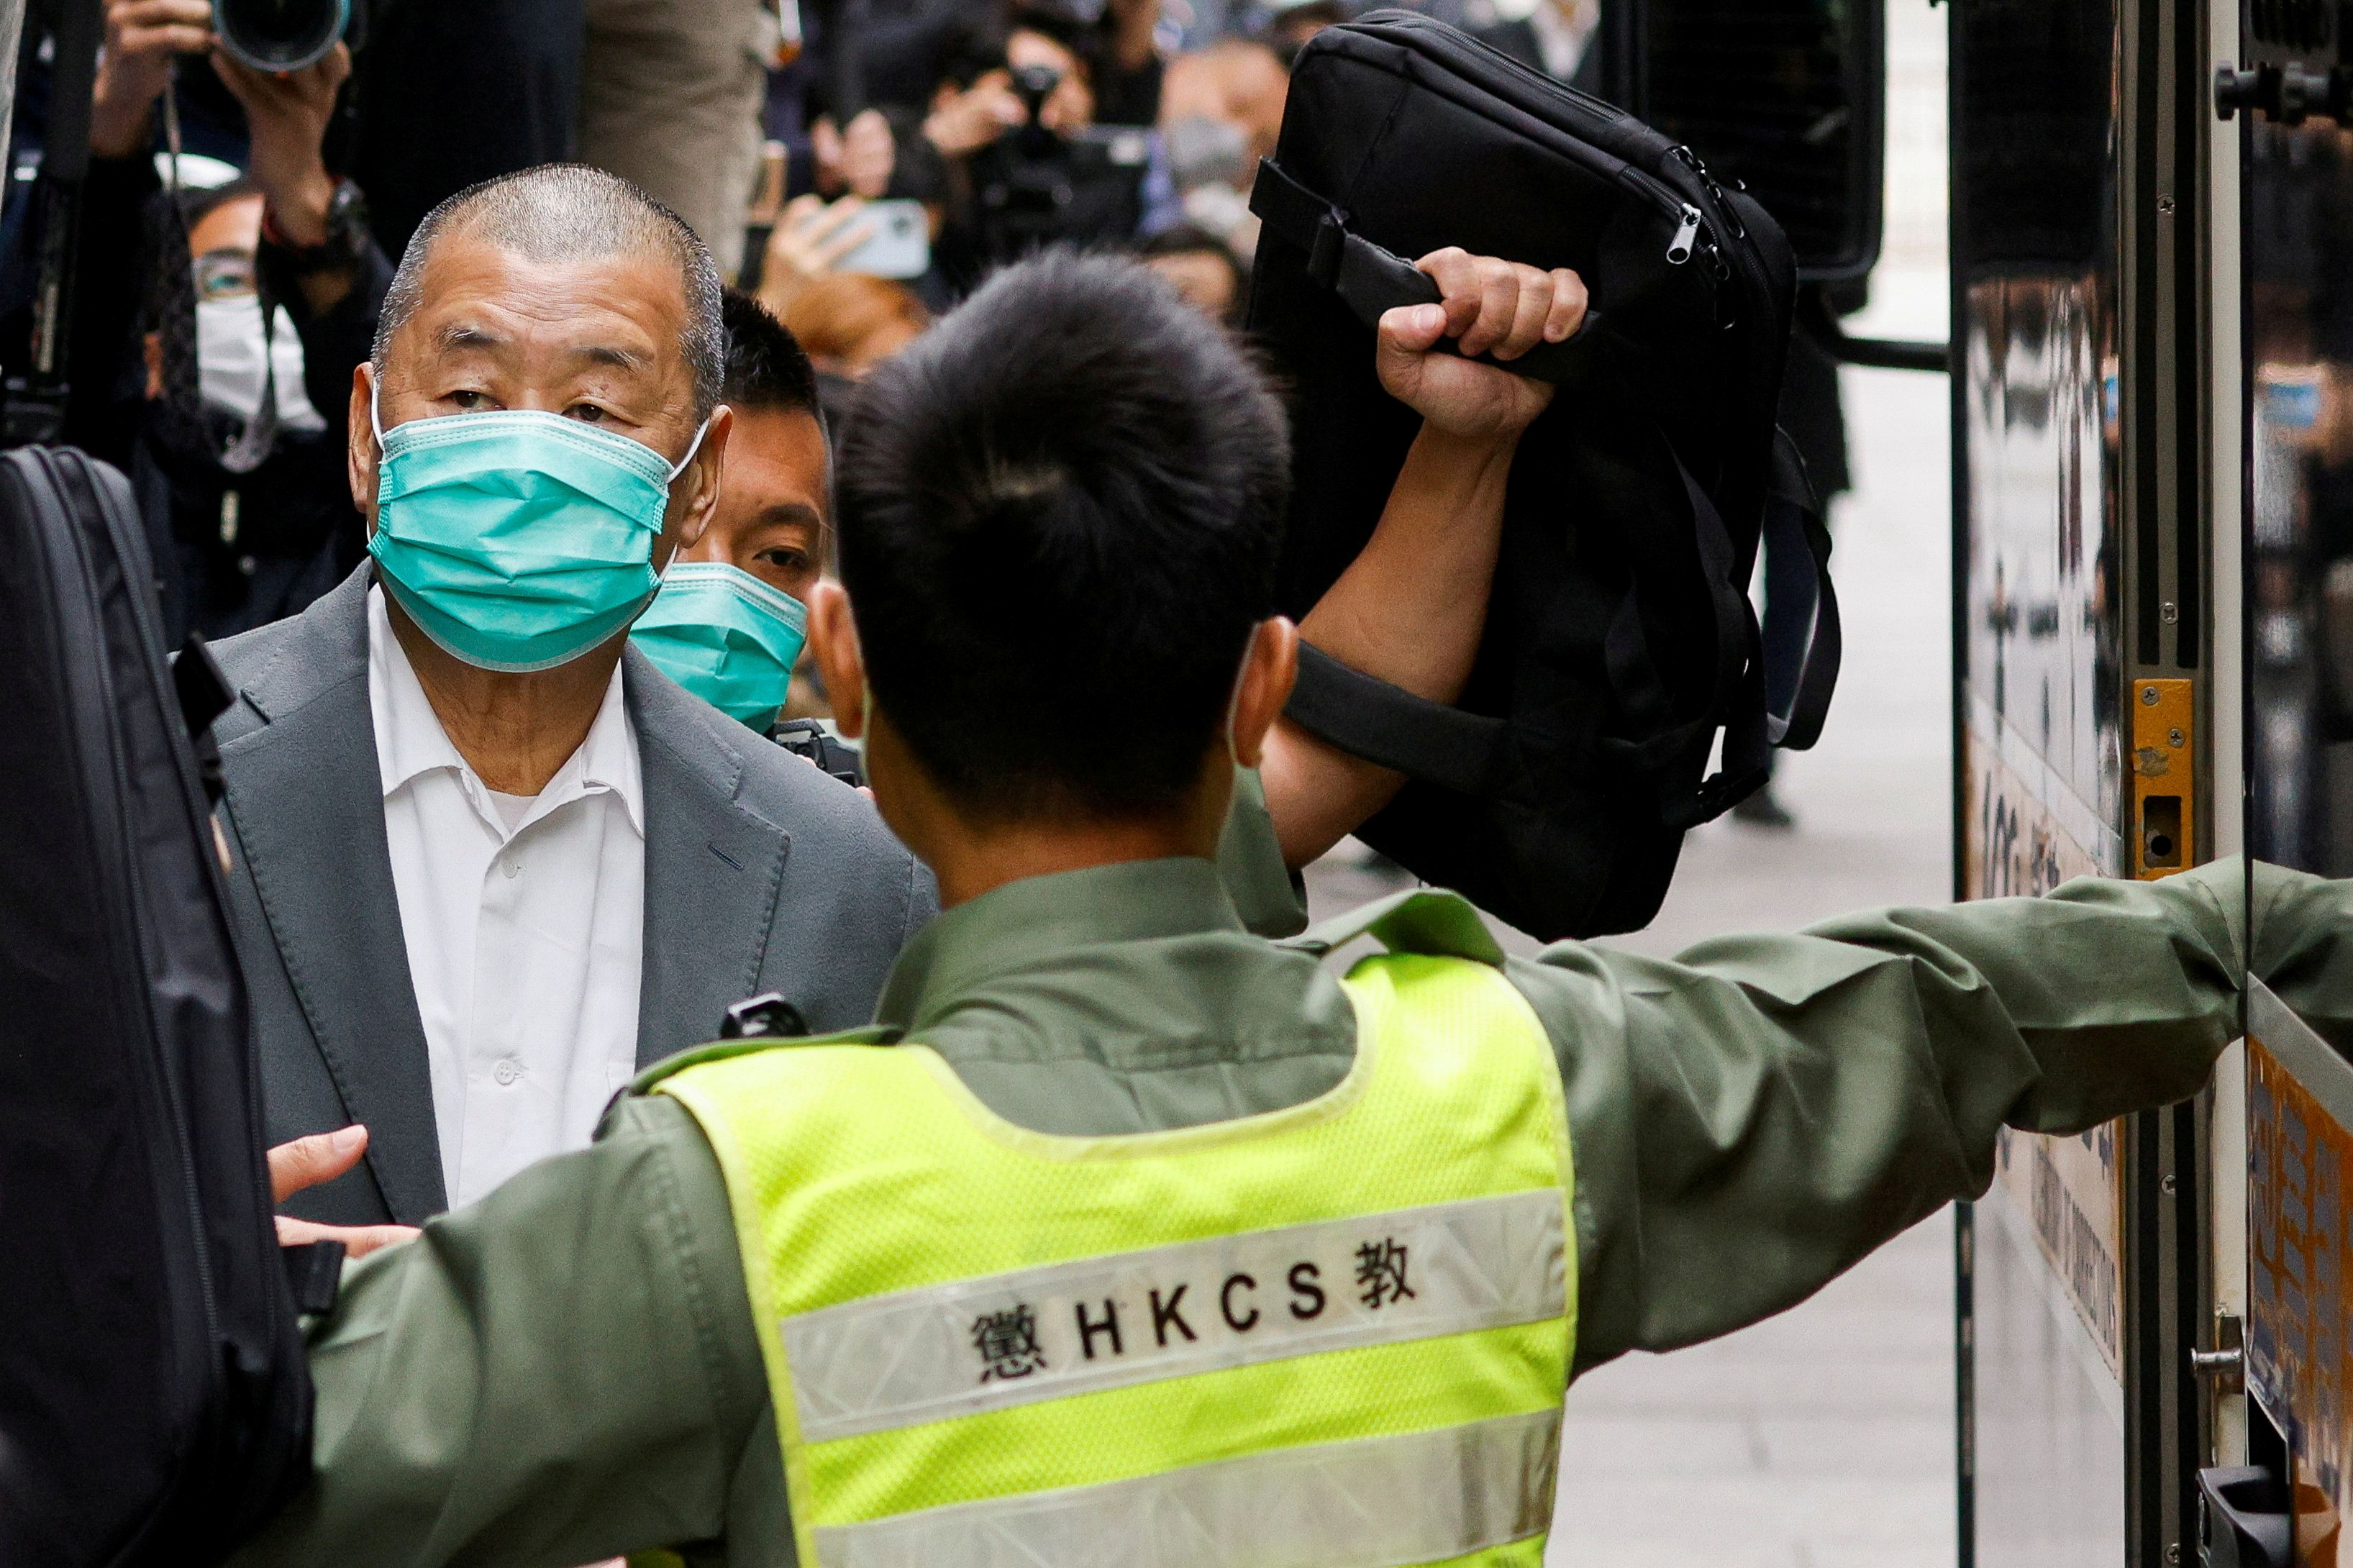 Jailed HK tycoon Jimmy Lai sentenced to 14 months for Oct. 1 illegal assembly